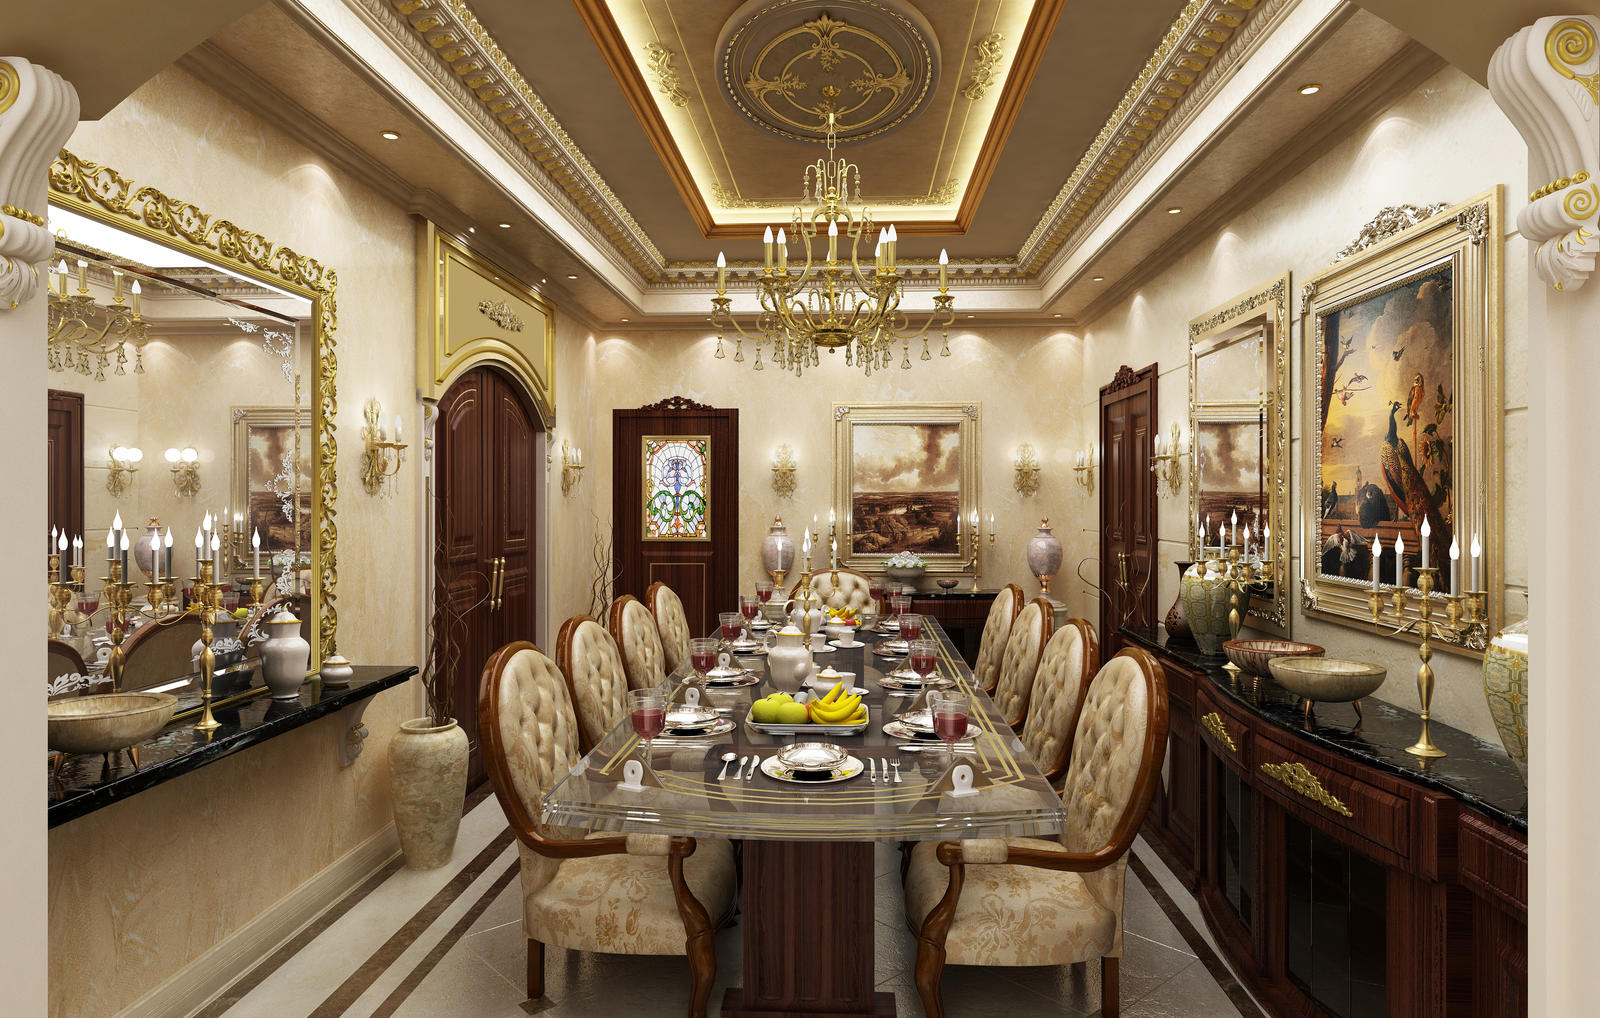 Dinning Room 2 by Amr-Maged